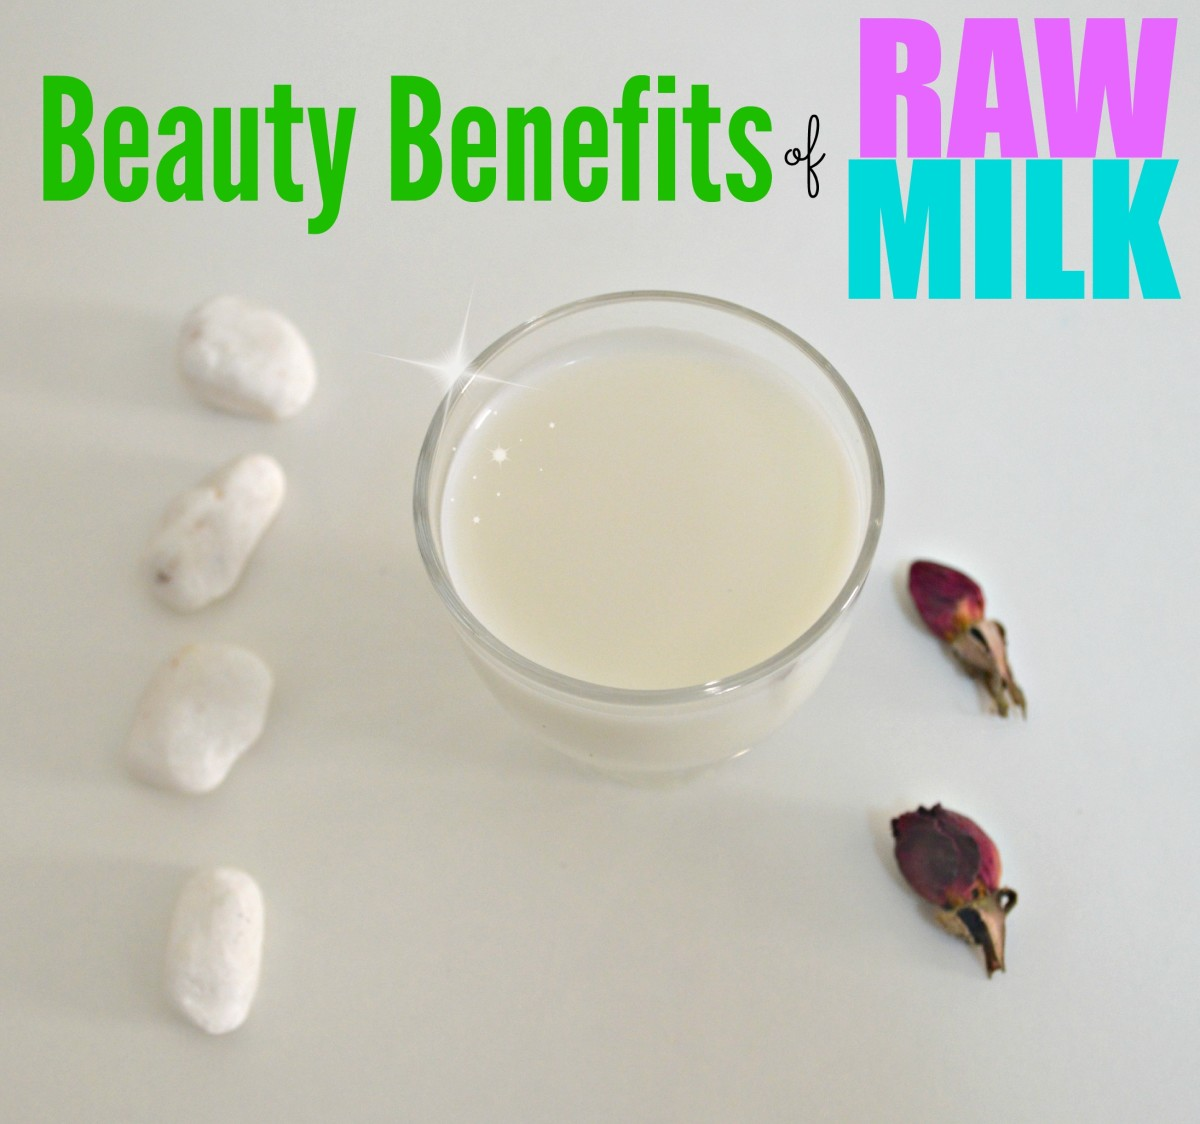 Top 5 Skin Benefits of Raw Milk & Beauty Tips